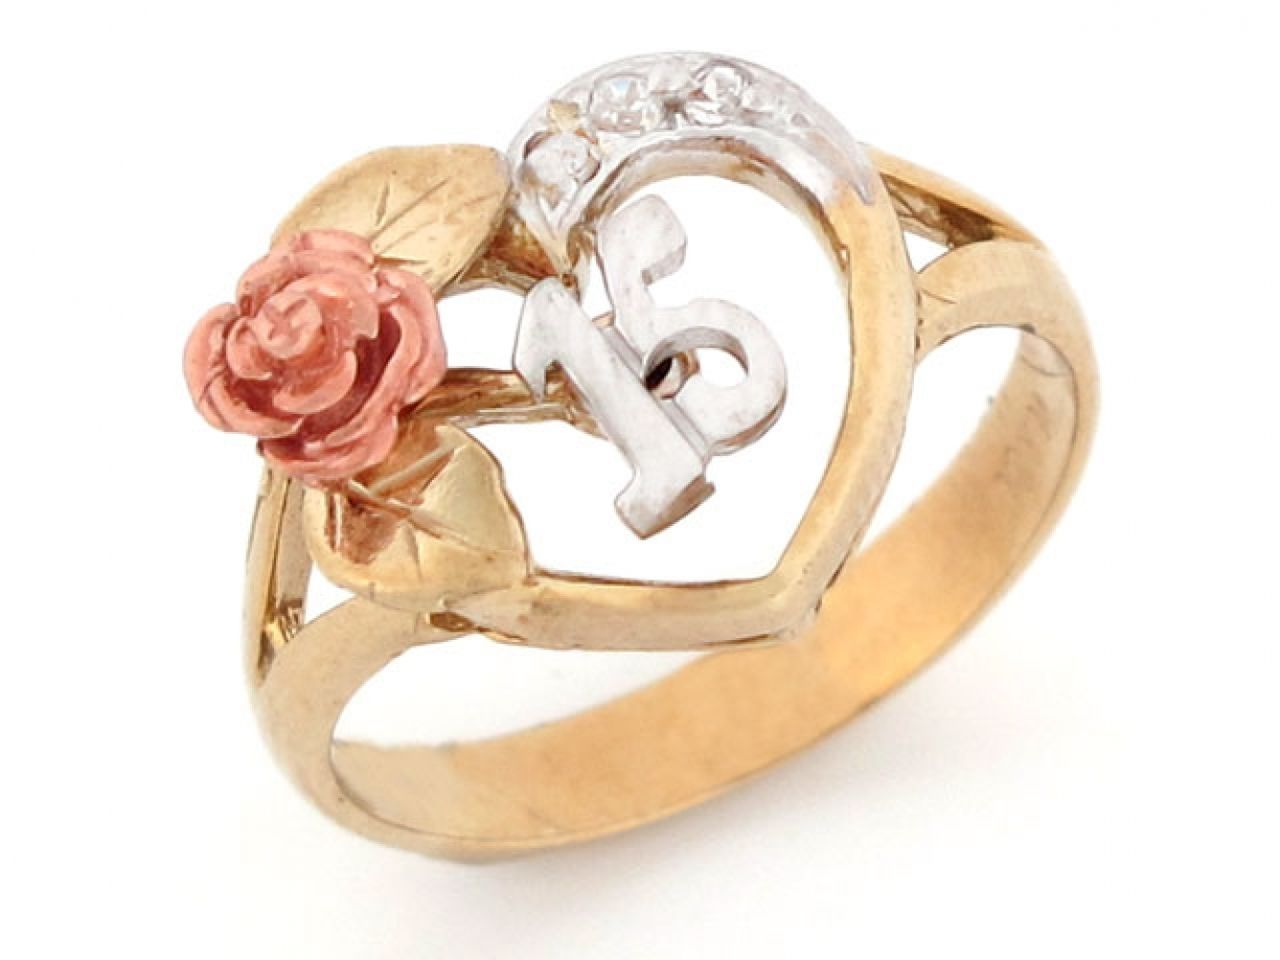 f136748bb3b1 Tri-color Gold 15 Anos Quinceanera Red Rose CZ Ring - Jewelry Liquidation